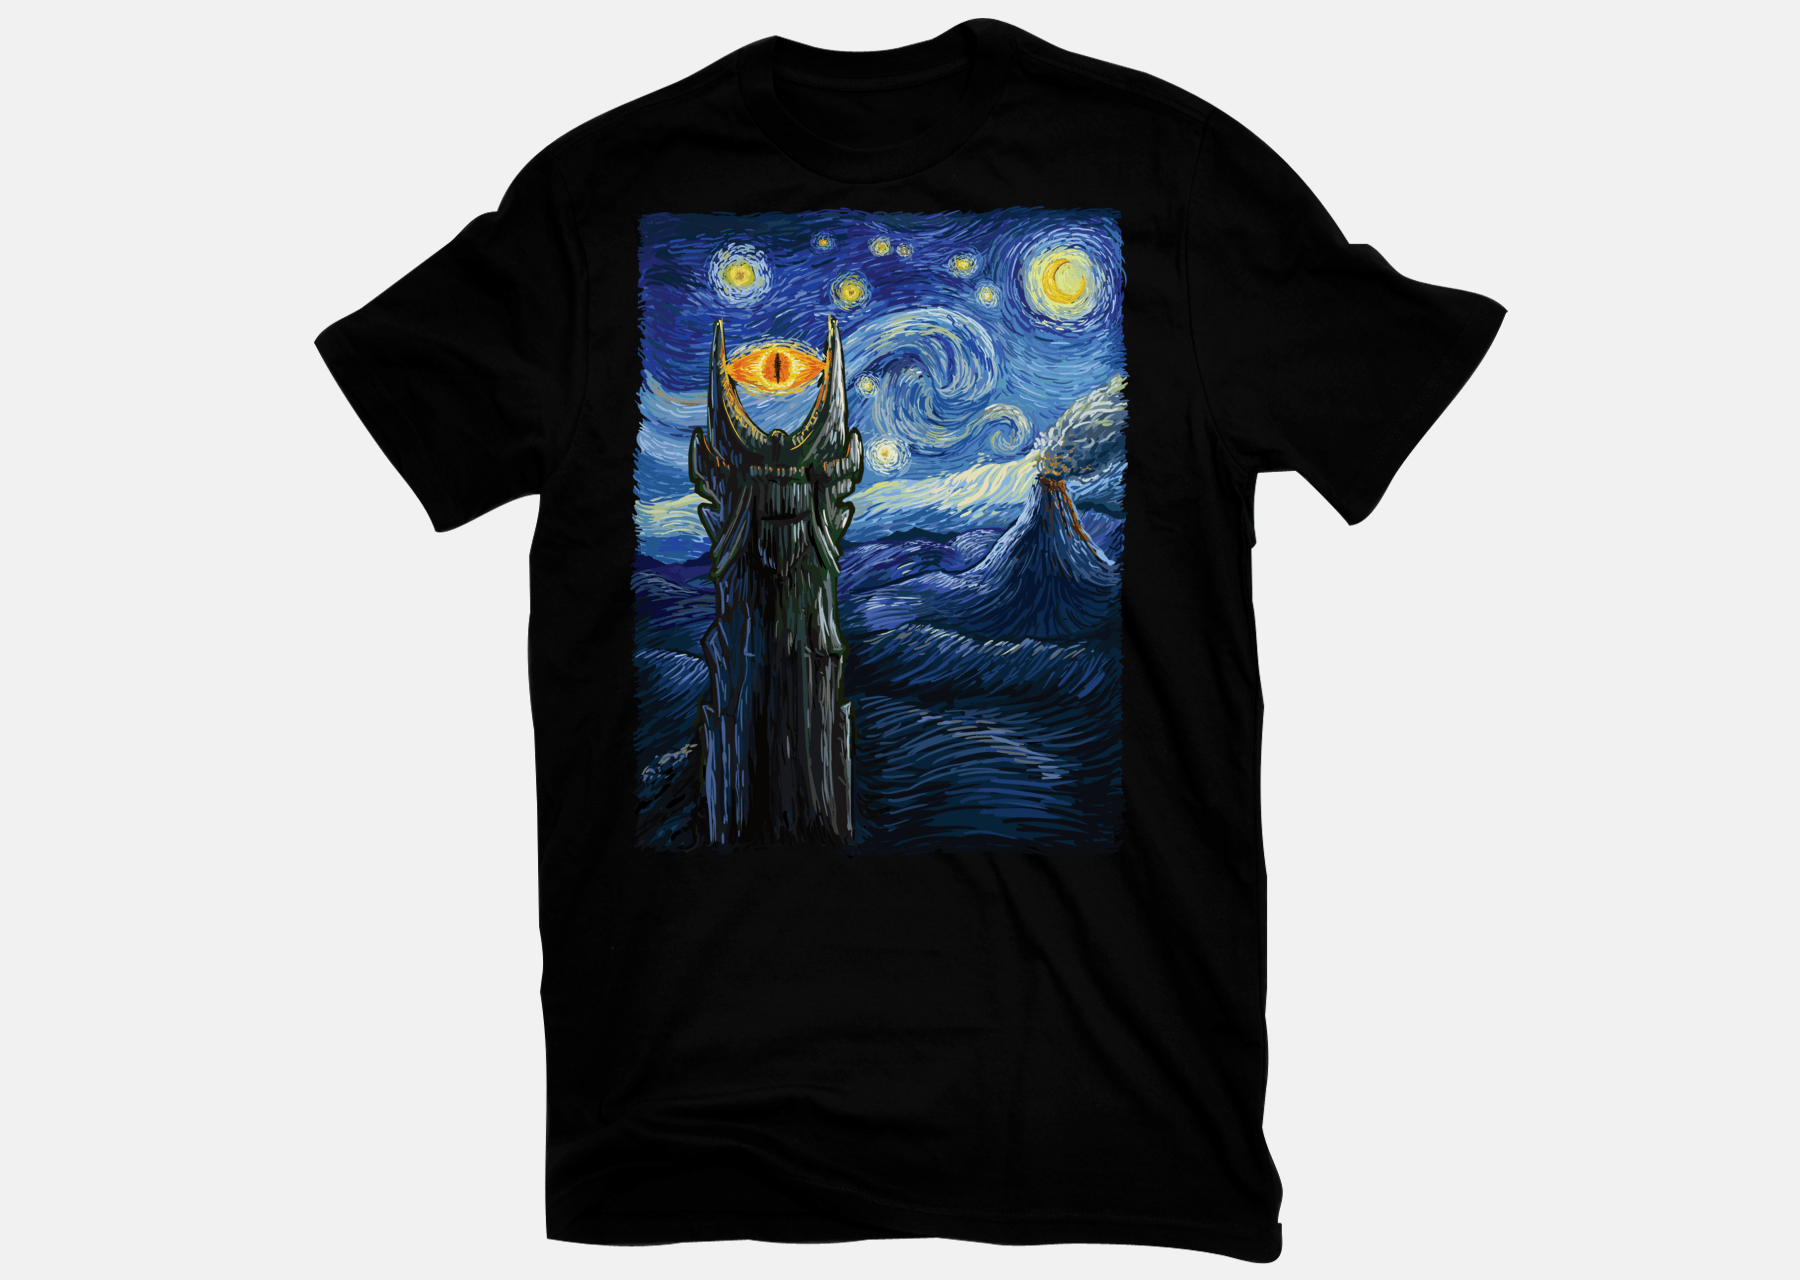 c23b57d7d6a07 Middle Earth Van Gogh